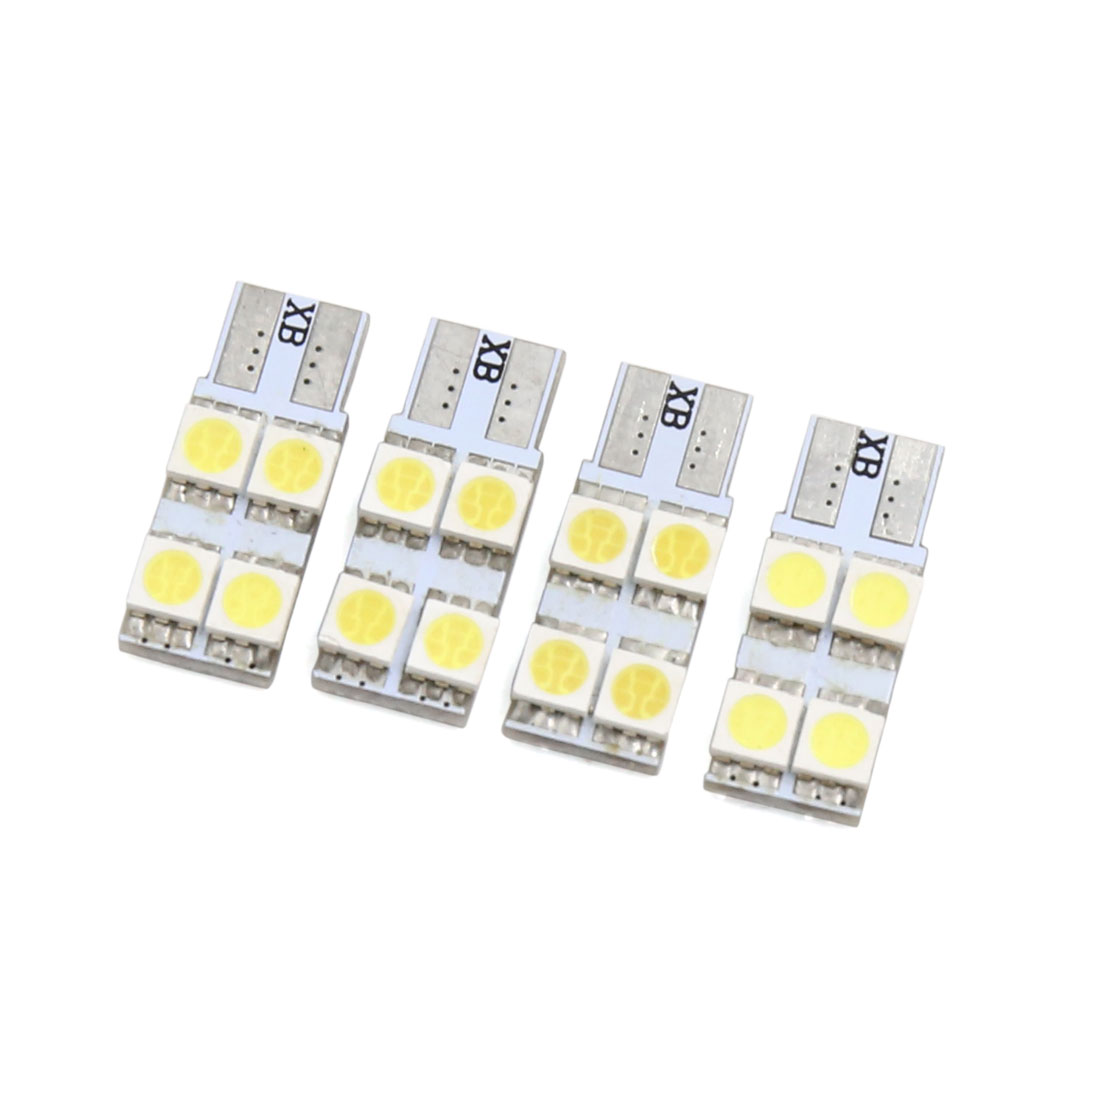 4Pcs White T10 4 Led 5050 Car Dashboard Light Lamp Interior 2825 158 192 194